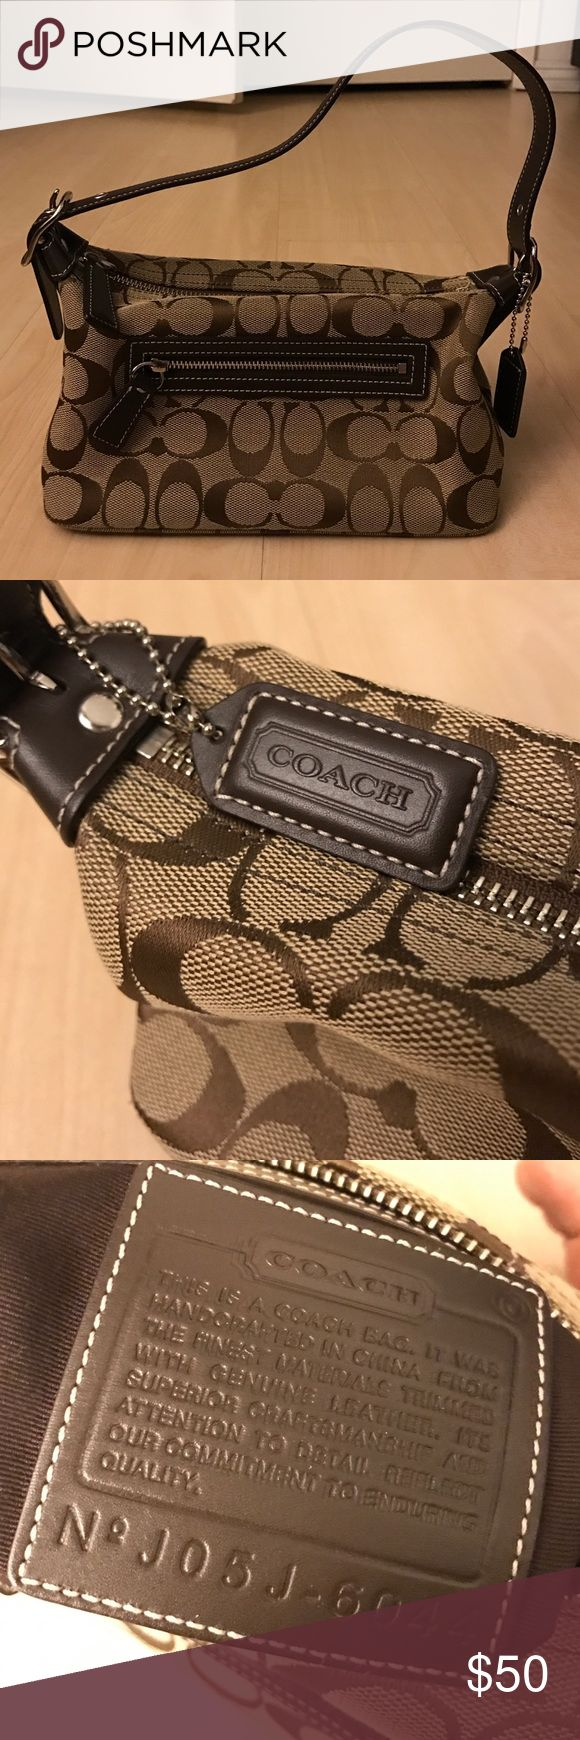 Coach signature mini shoulder bag Classic style. Signature jacquard print. Dark brown leather trim. Very gently used, no signs of wear. Coach Bags Mini Bags